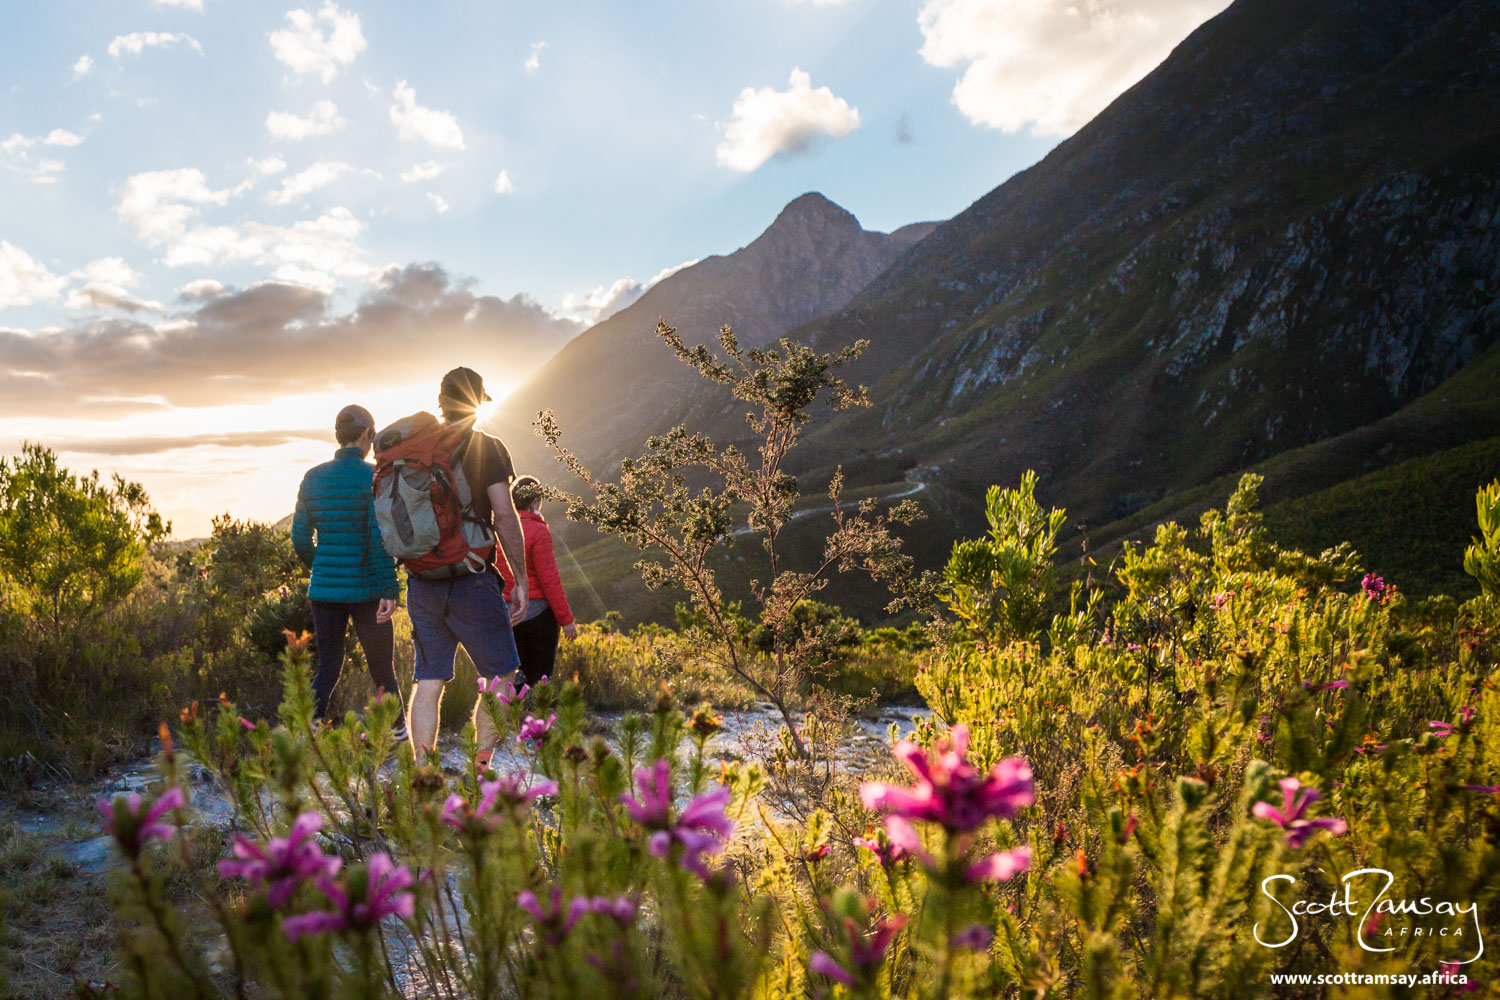 Marloth is known for it's rugged mountains and fynbos diversity. It's a place that you need several days to explore properly on foot, because there are no roads, only hiking paths. And watch out for the weather, which can change quickly.